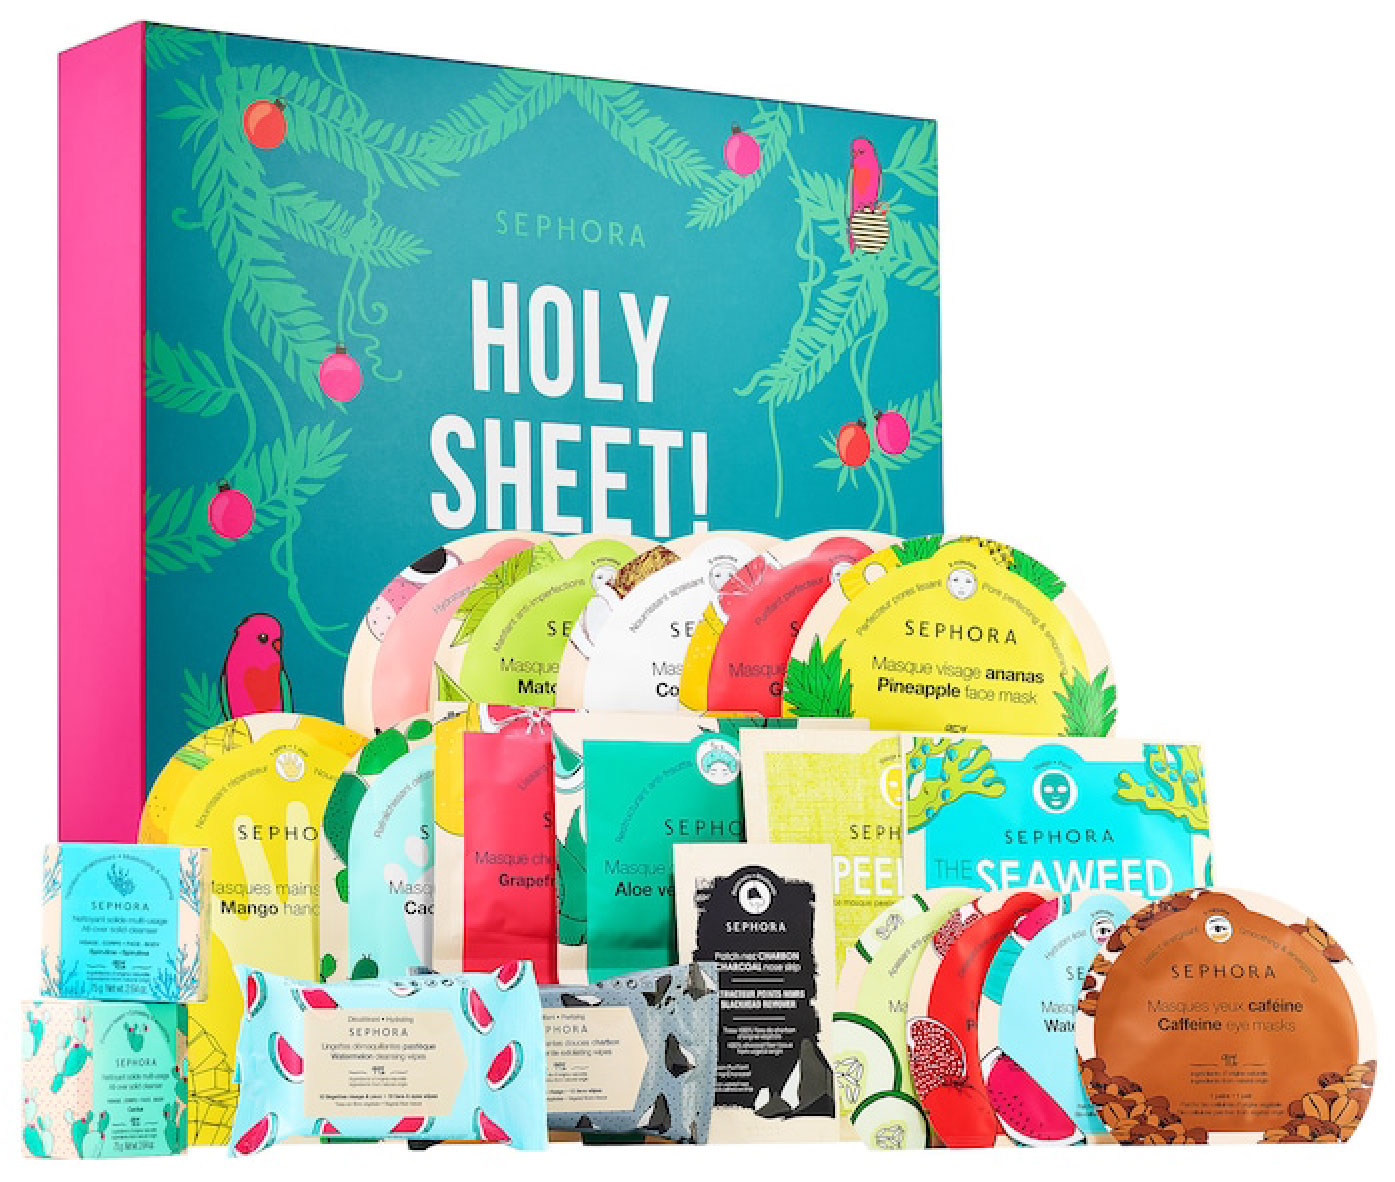 Sephora Holy Sheet holiday gift set